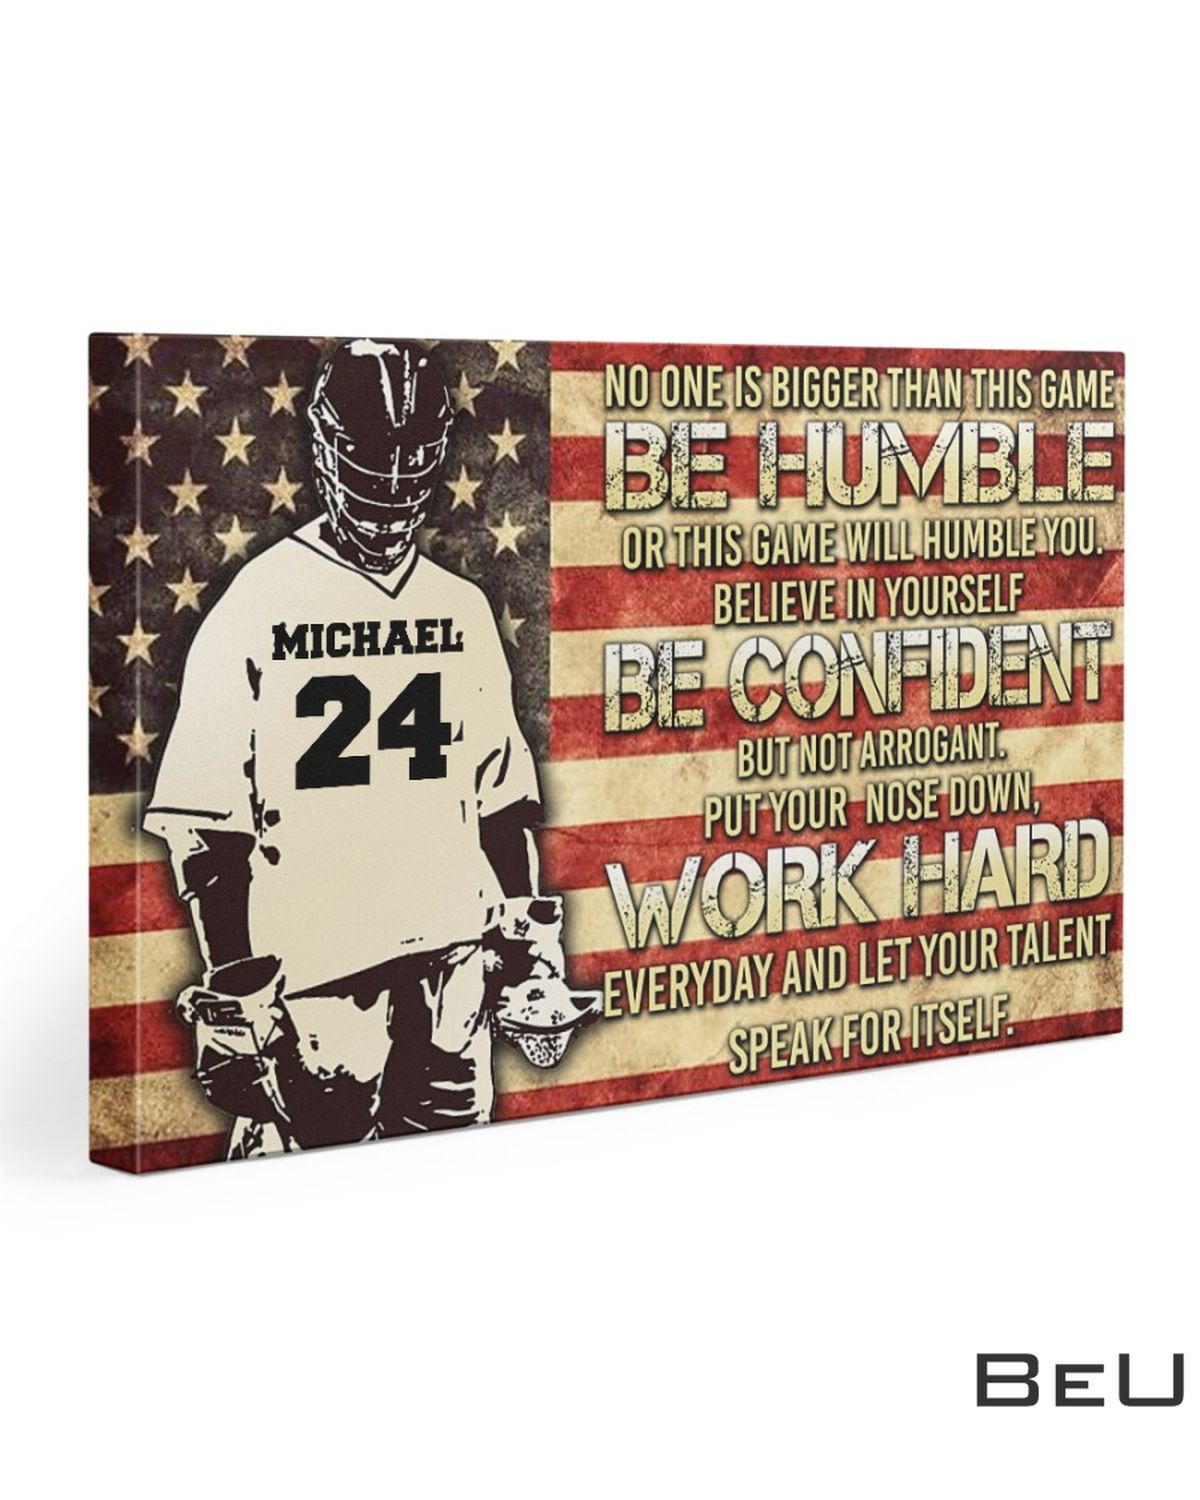 Personalized No One Is Bigger Than This Game Be Humble Or This Game Will Humble You Canvas